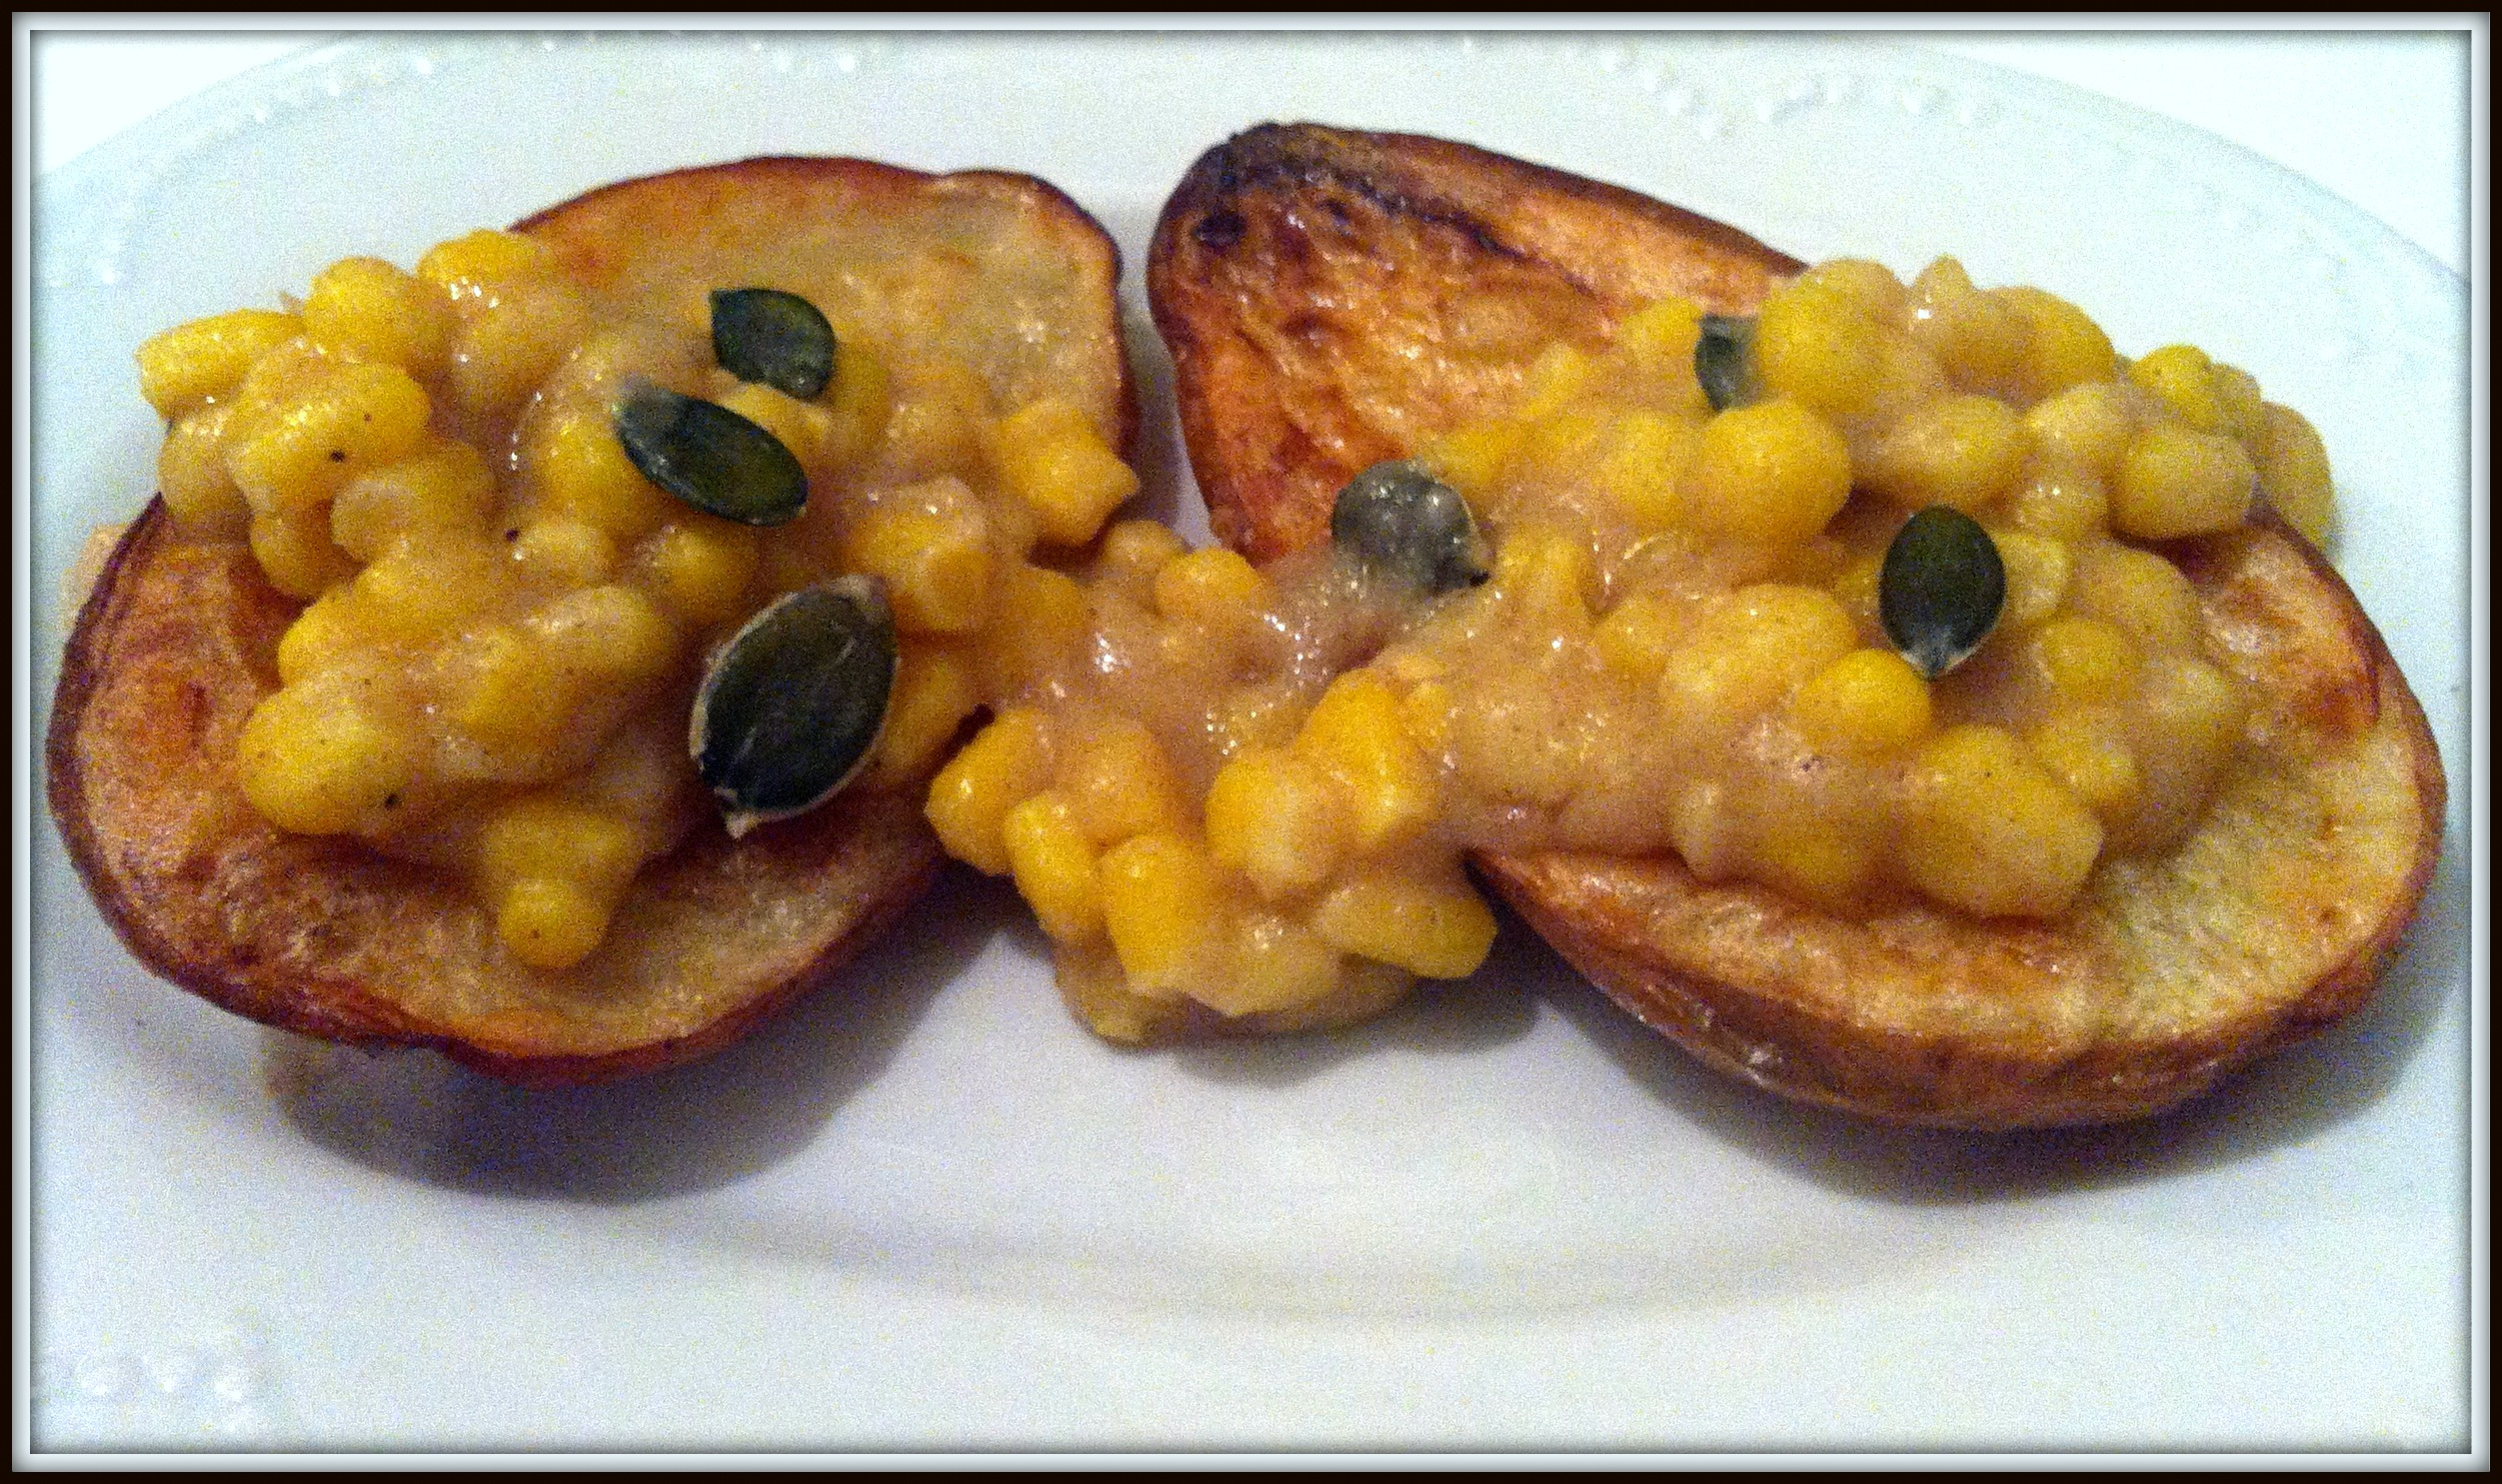 bakes potatoes with creamy corn topping recipe by yaeli shochat